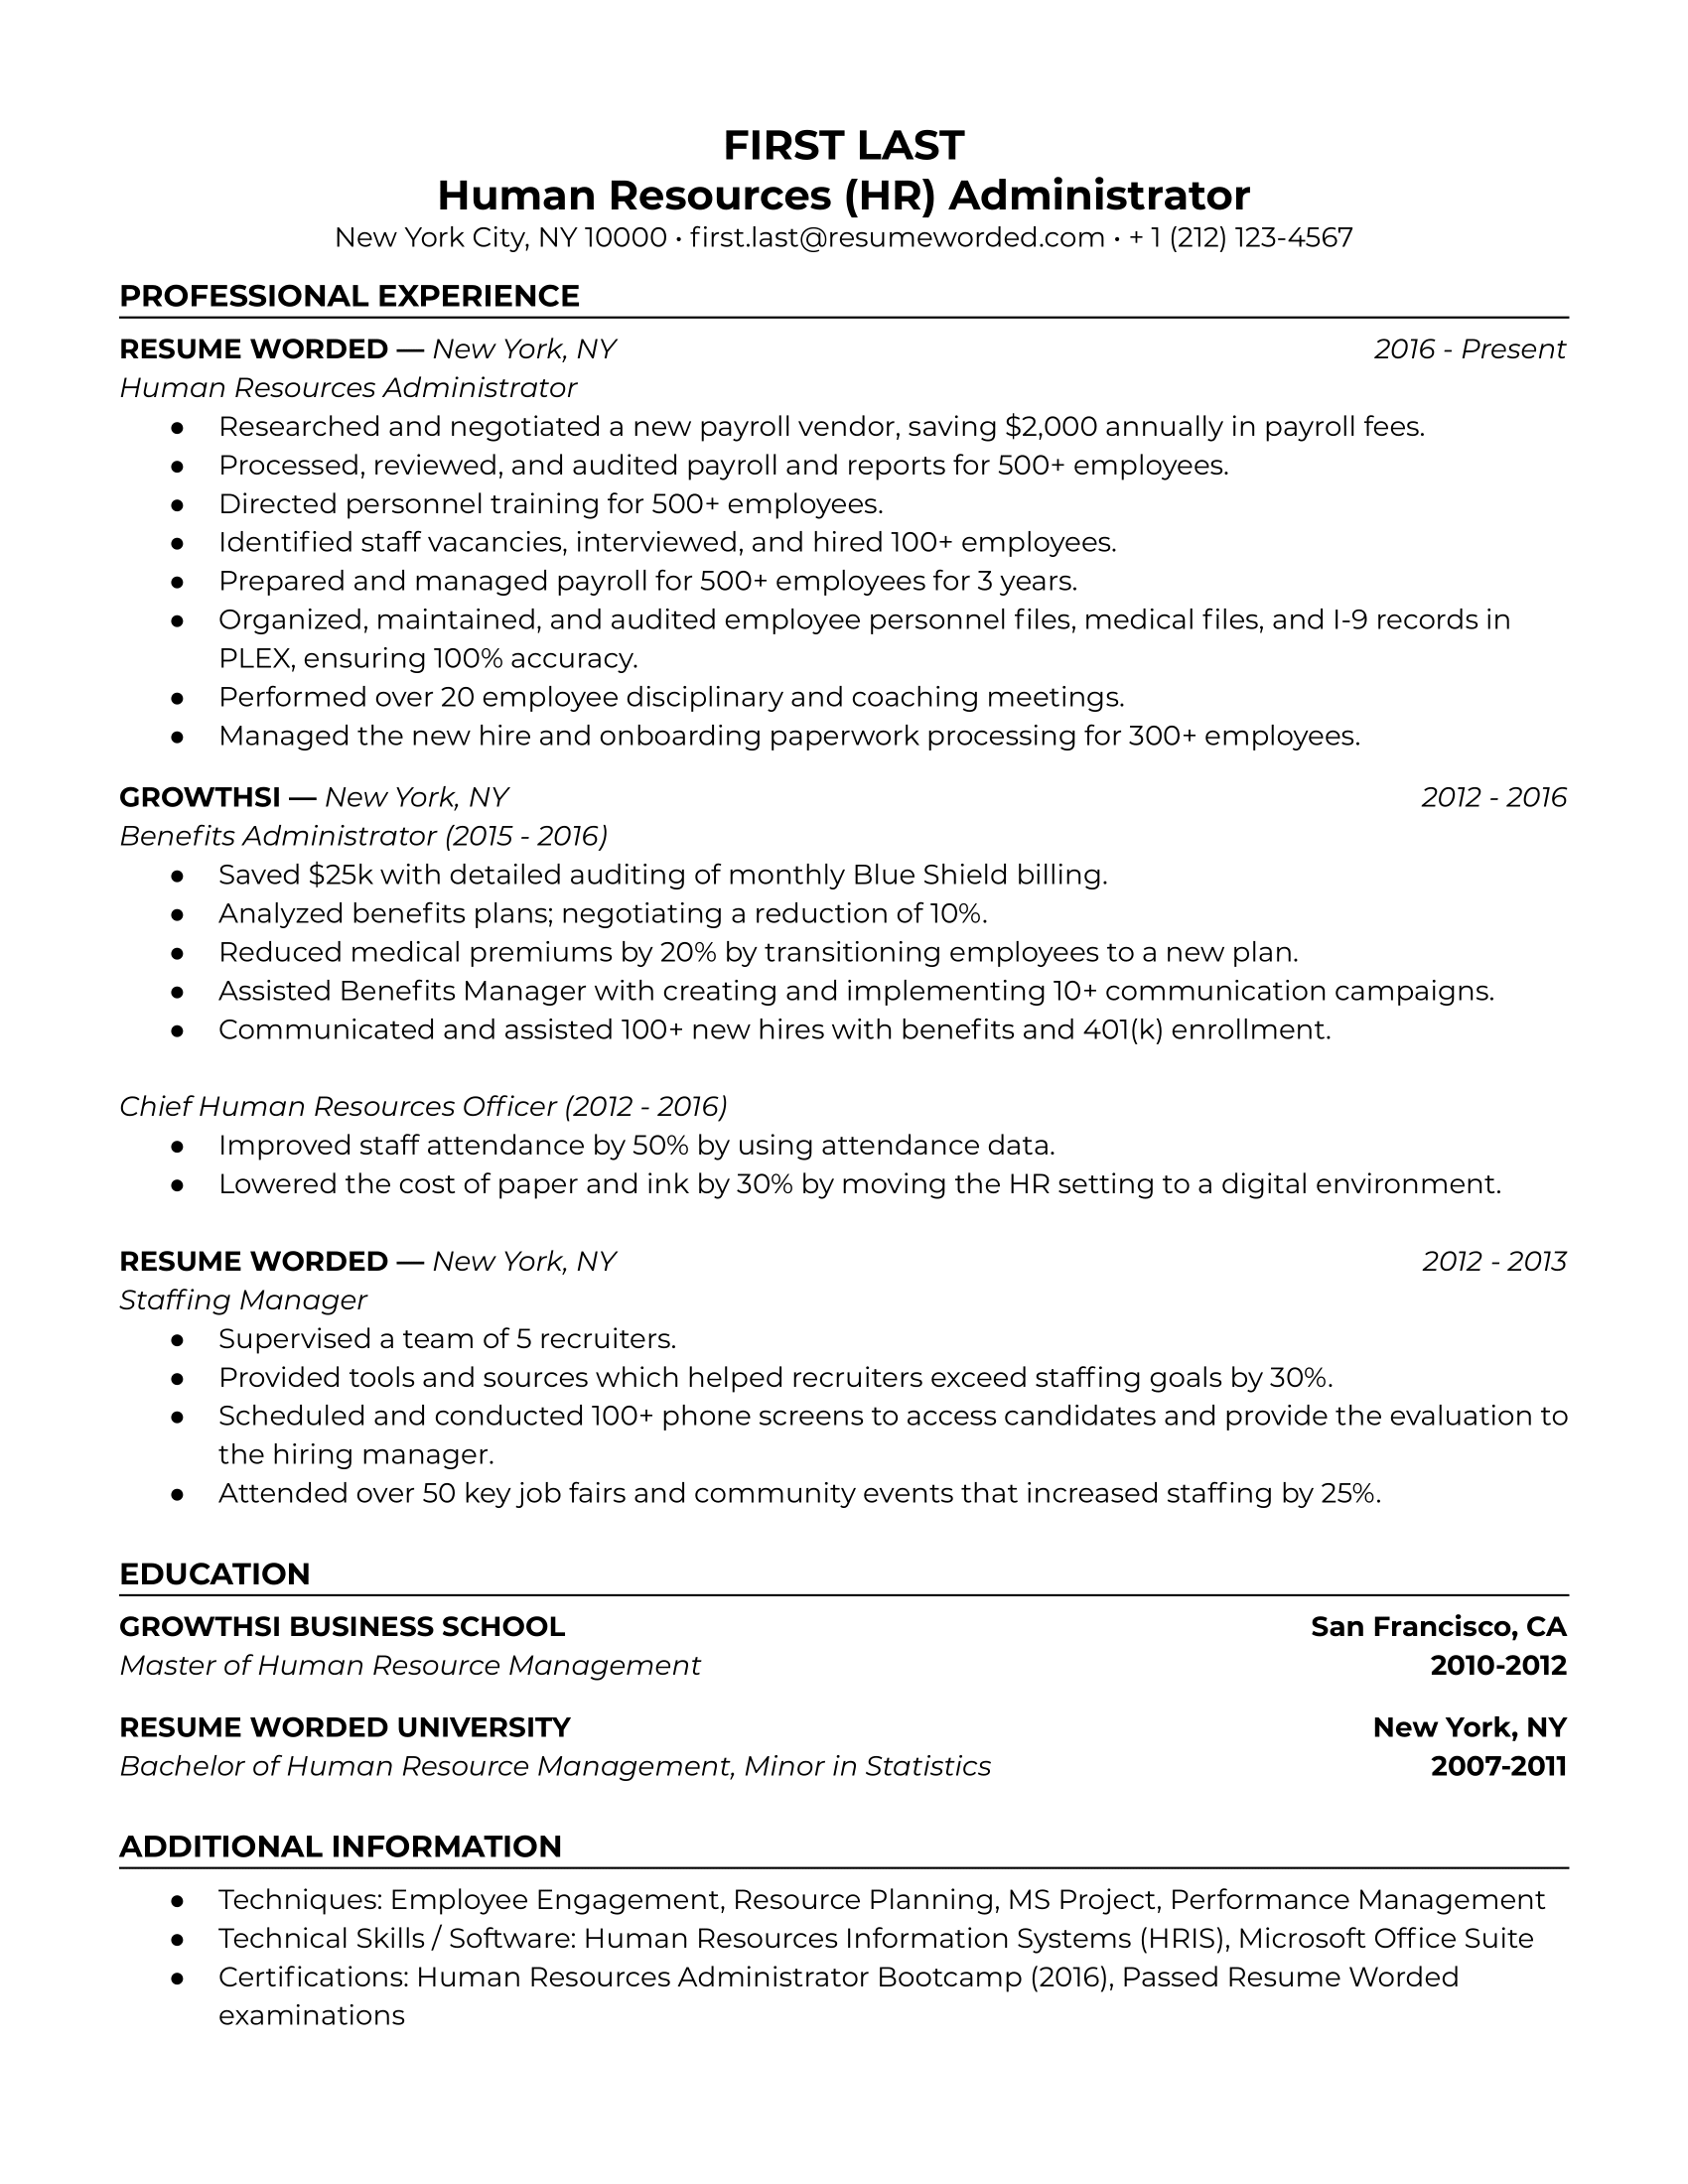 Human Resources (HR) Administrator Resume Sample